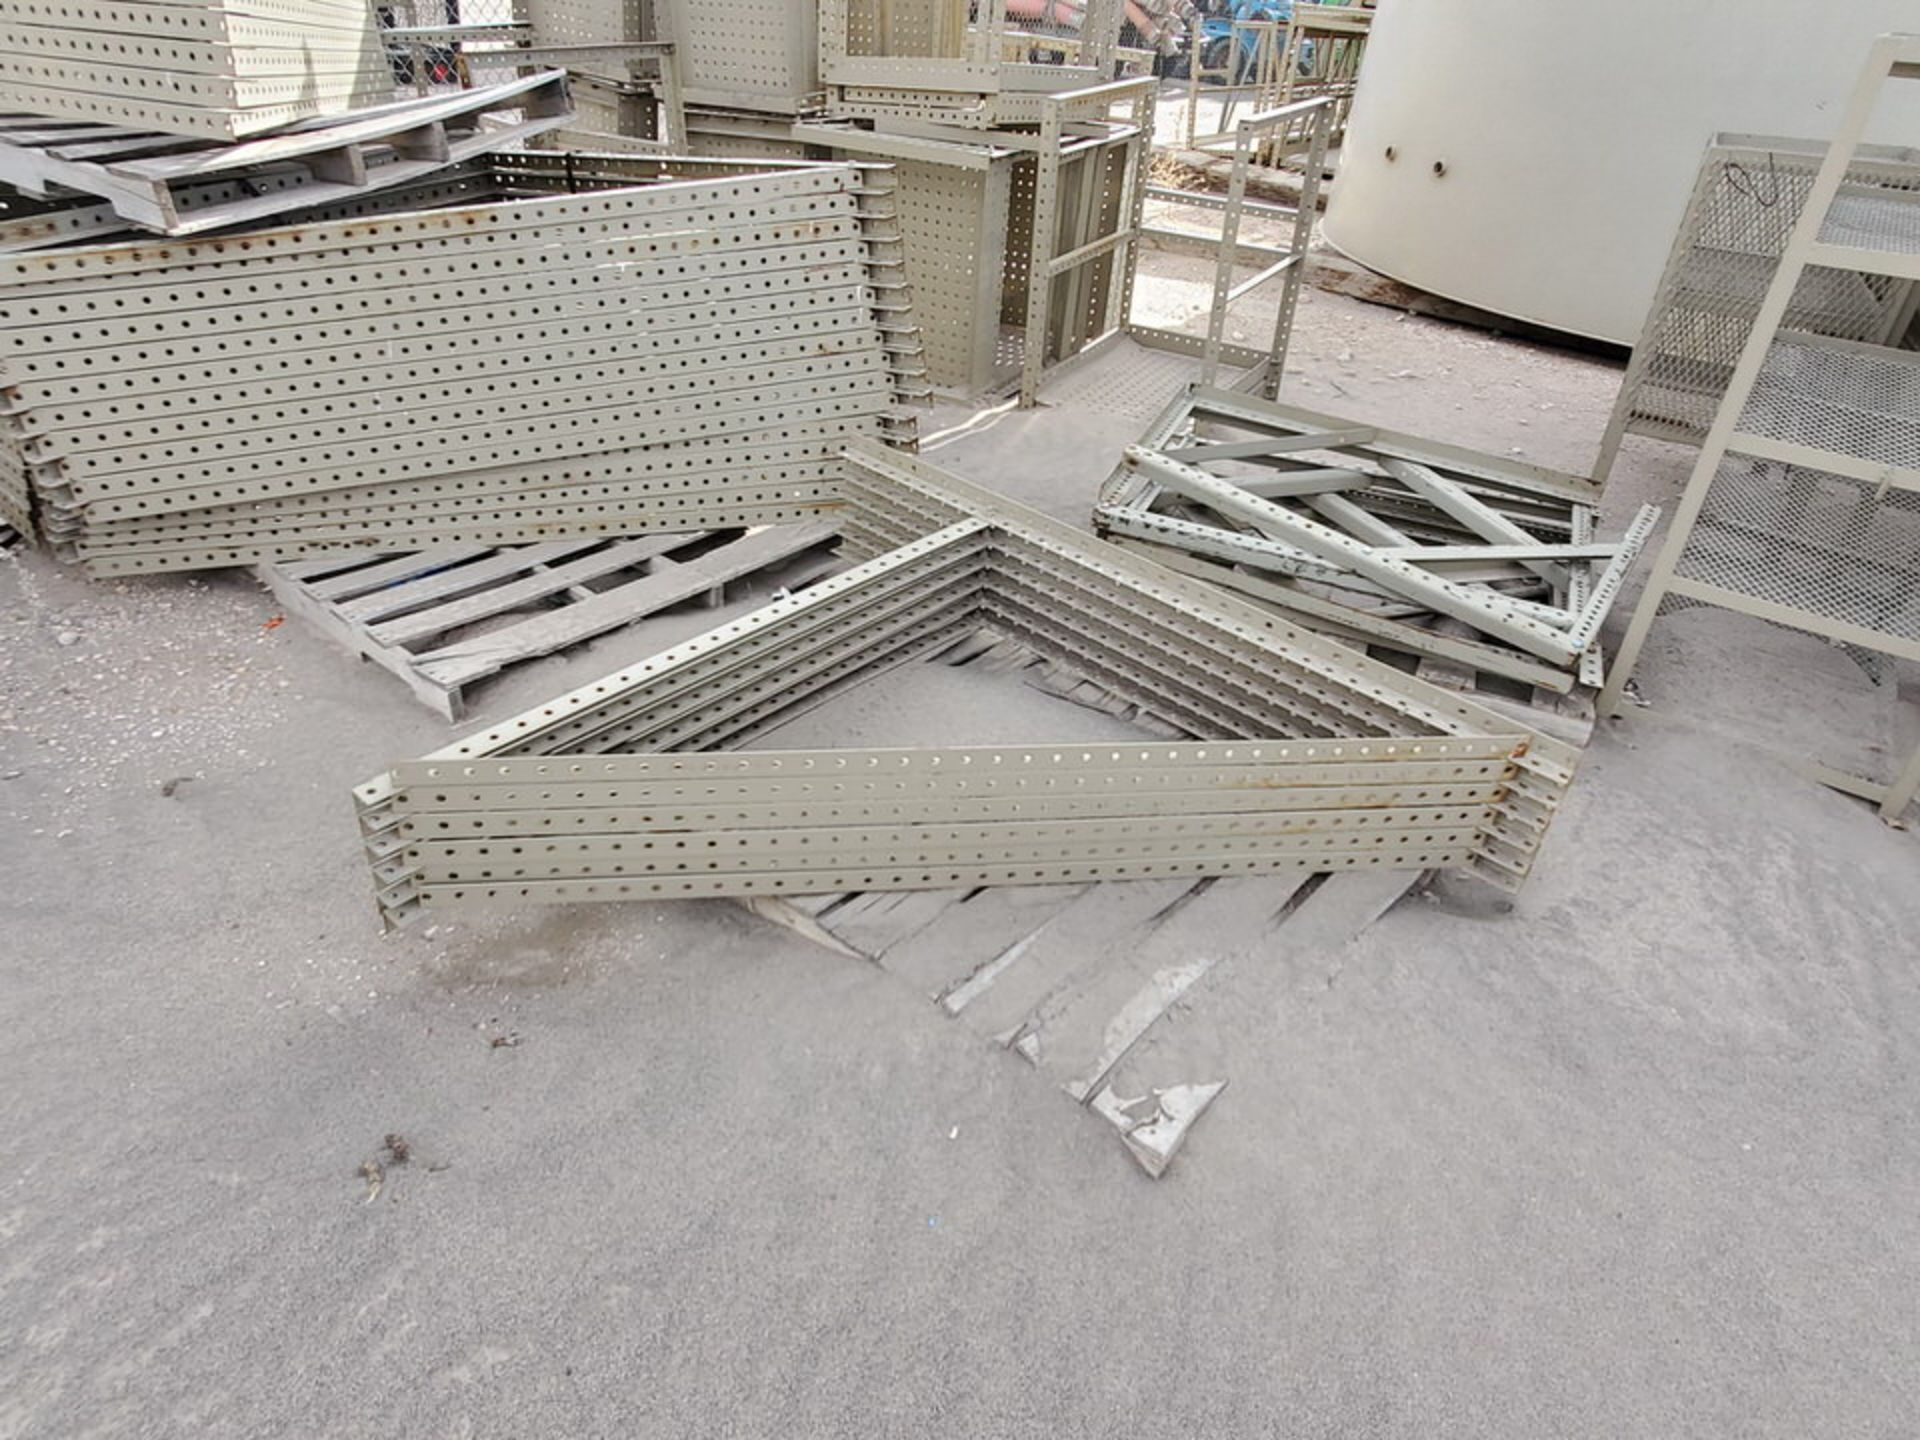 Disassembled Catwalk Sections - Image 9 of 12